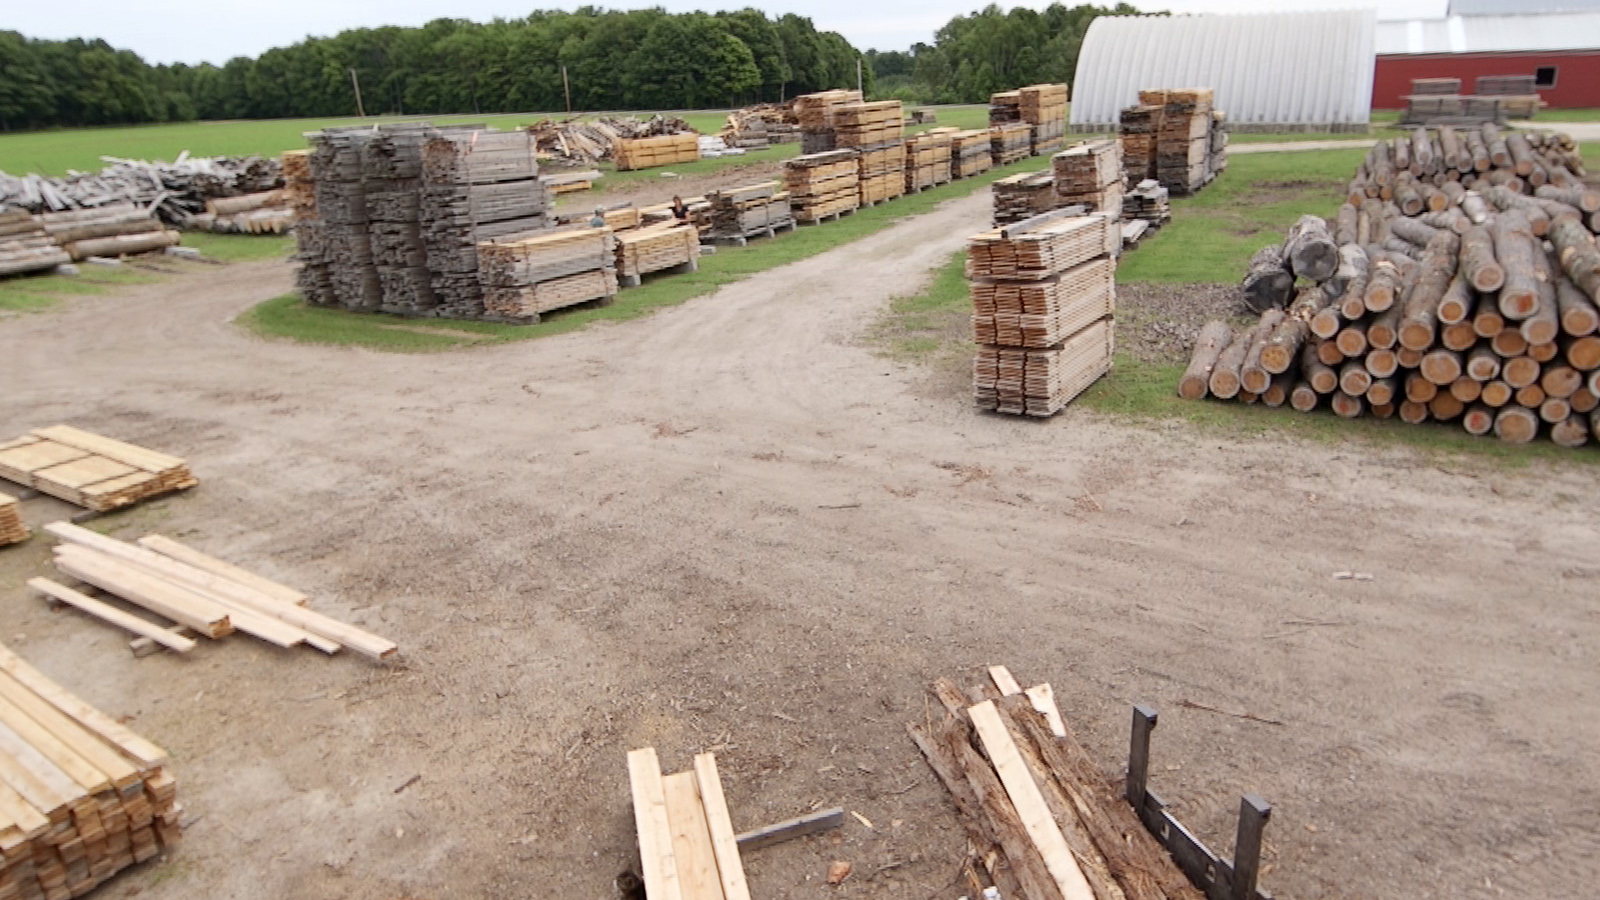 Rows of lumber and timber stacks with storage buildings in background